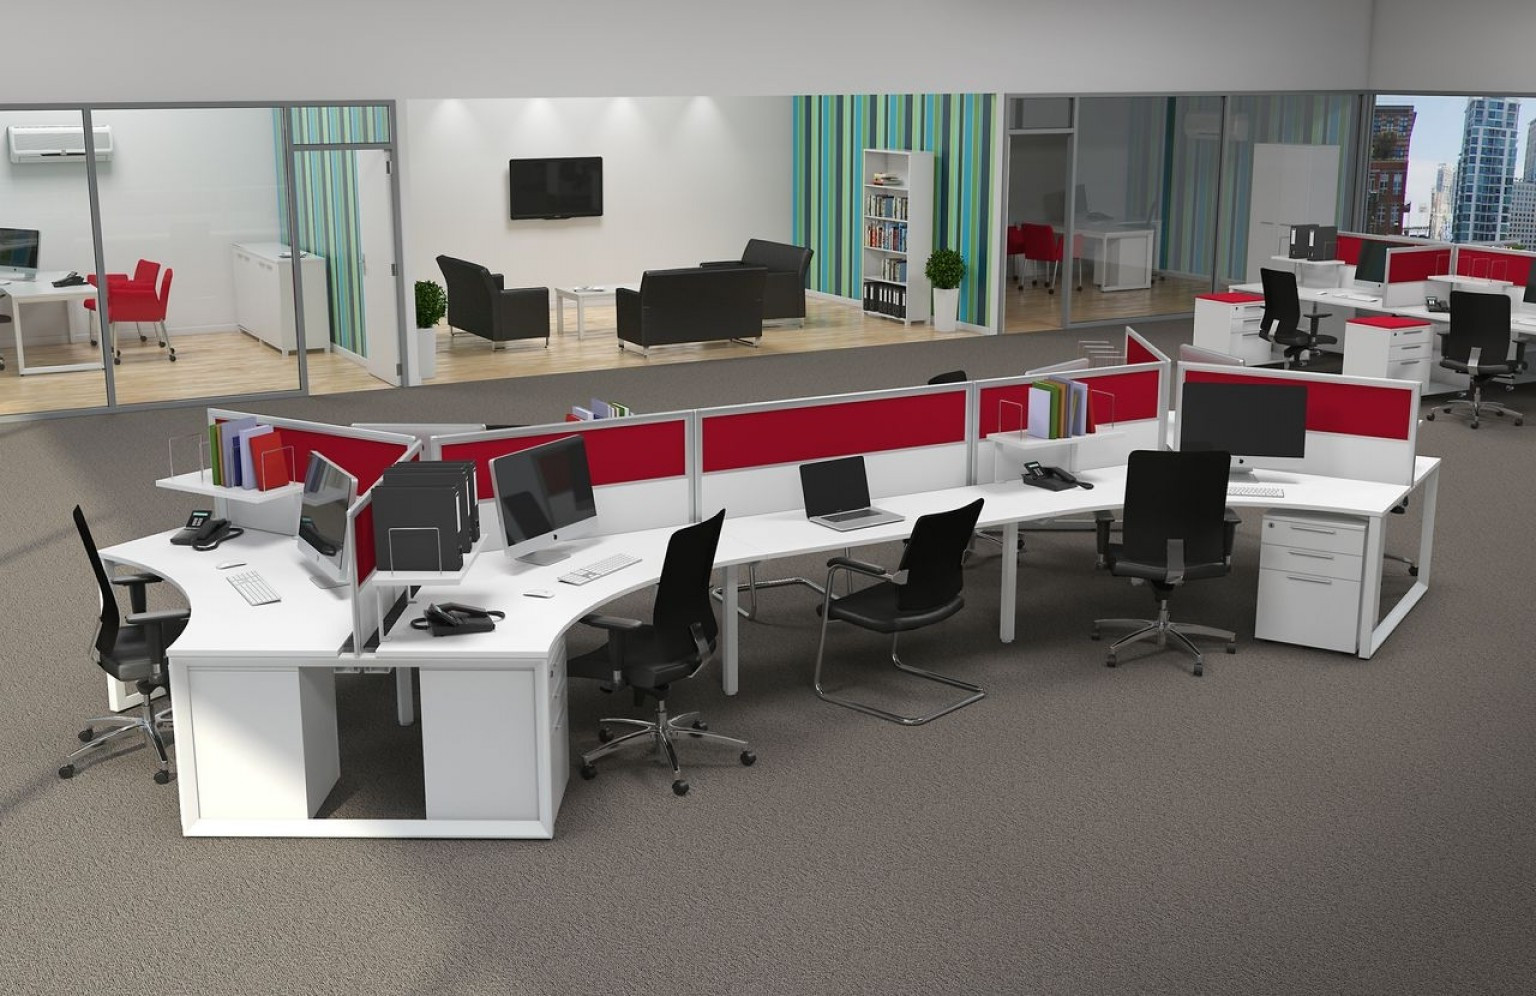 Best ideas about Small Office Furniture . Save or Pin Home fice Small fice Designs Great Home fices fice Now.